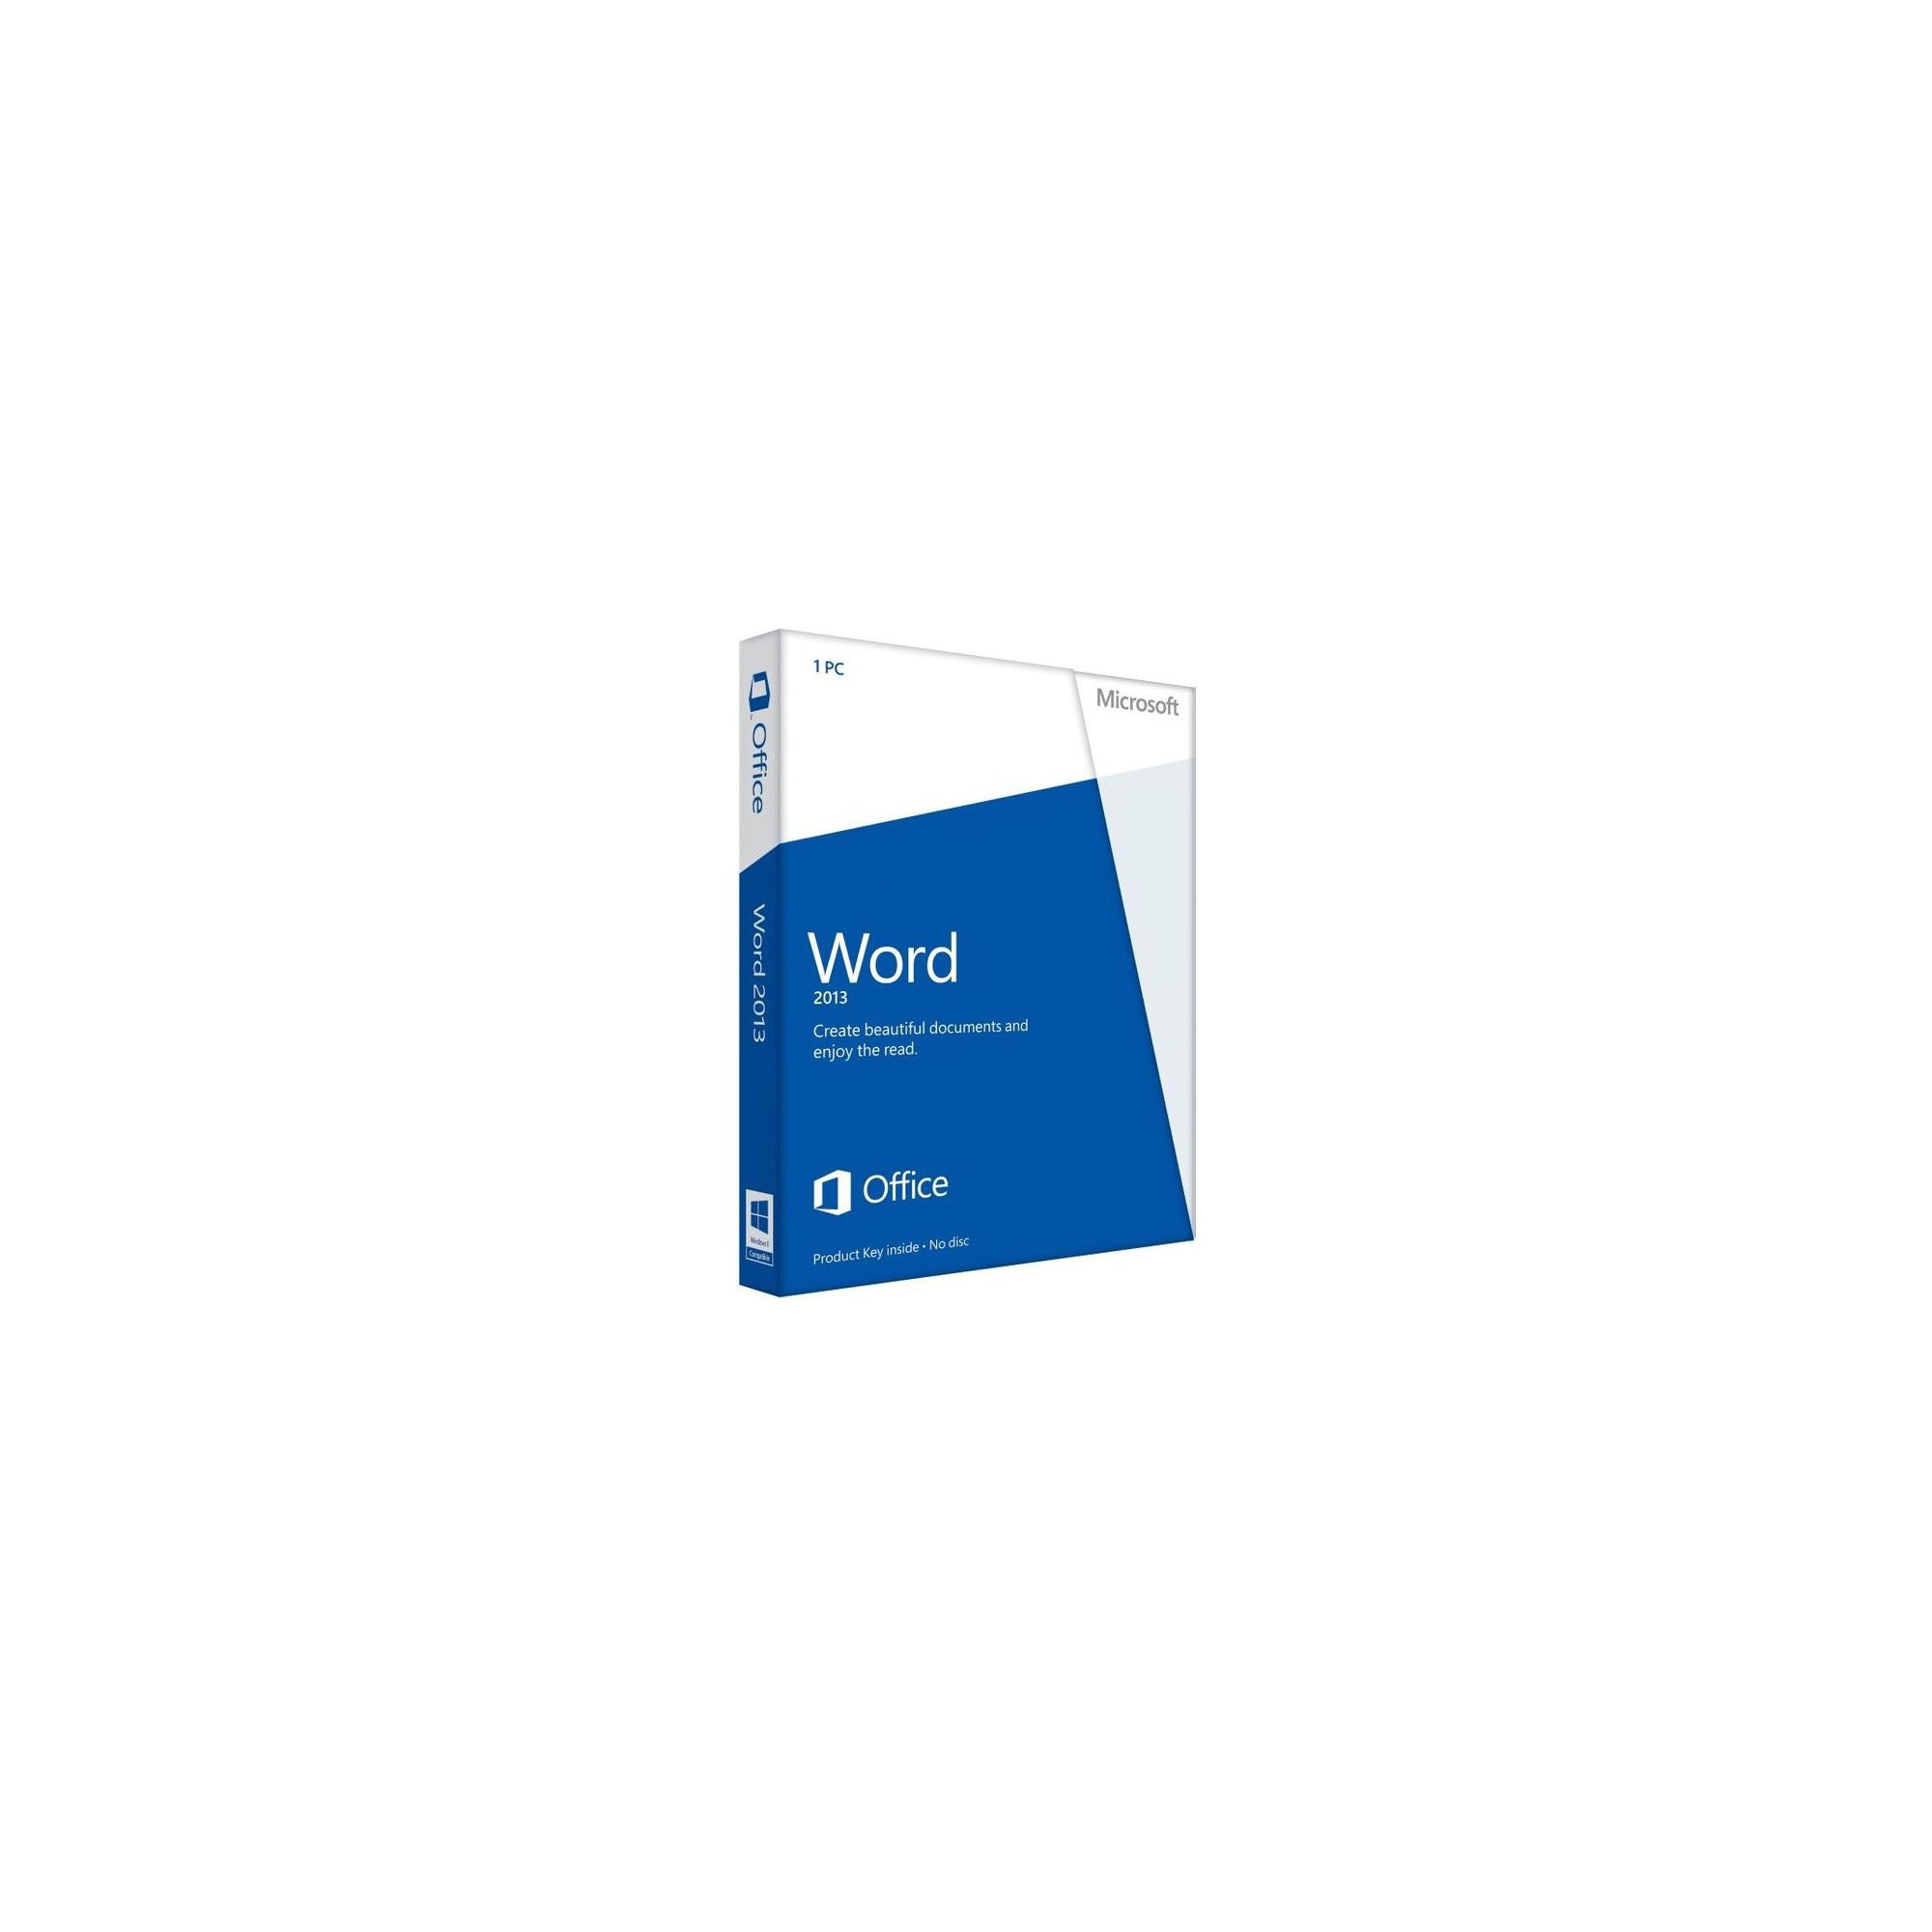 Offerta: Microsoft Word 059-08400 2013 32-Bit/x64 (English) Medialess Non-Commercial